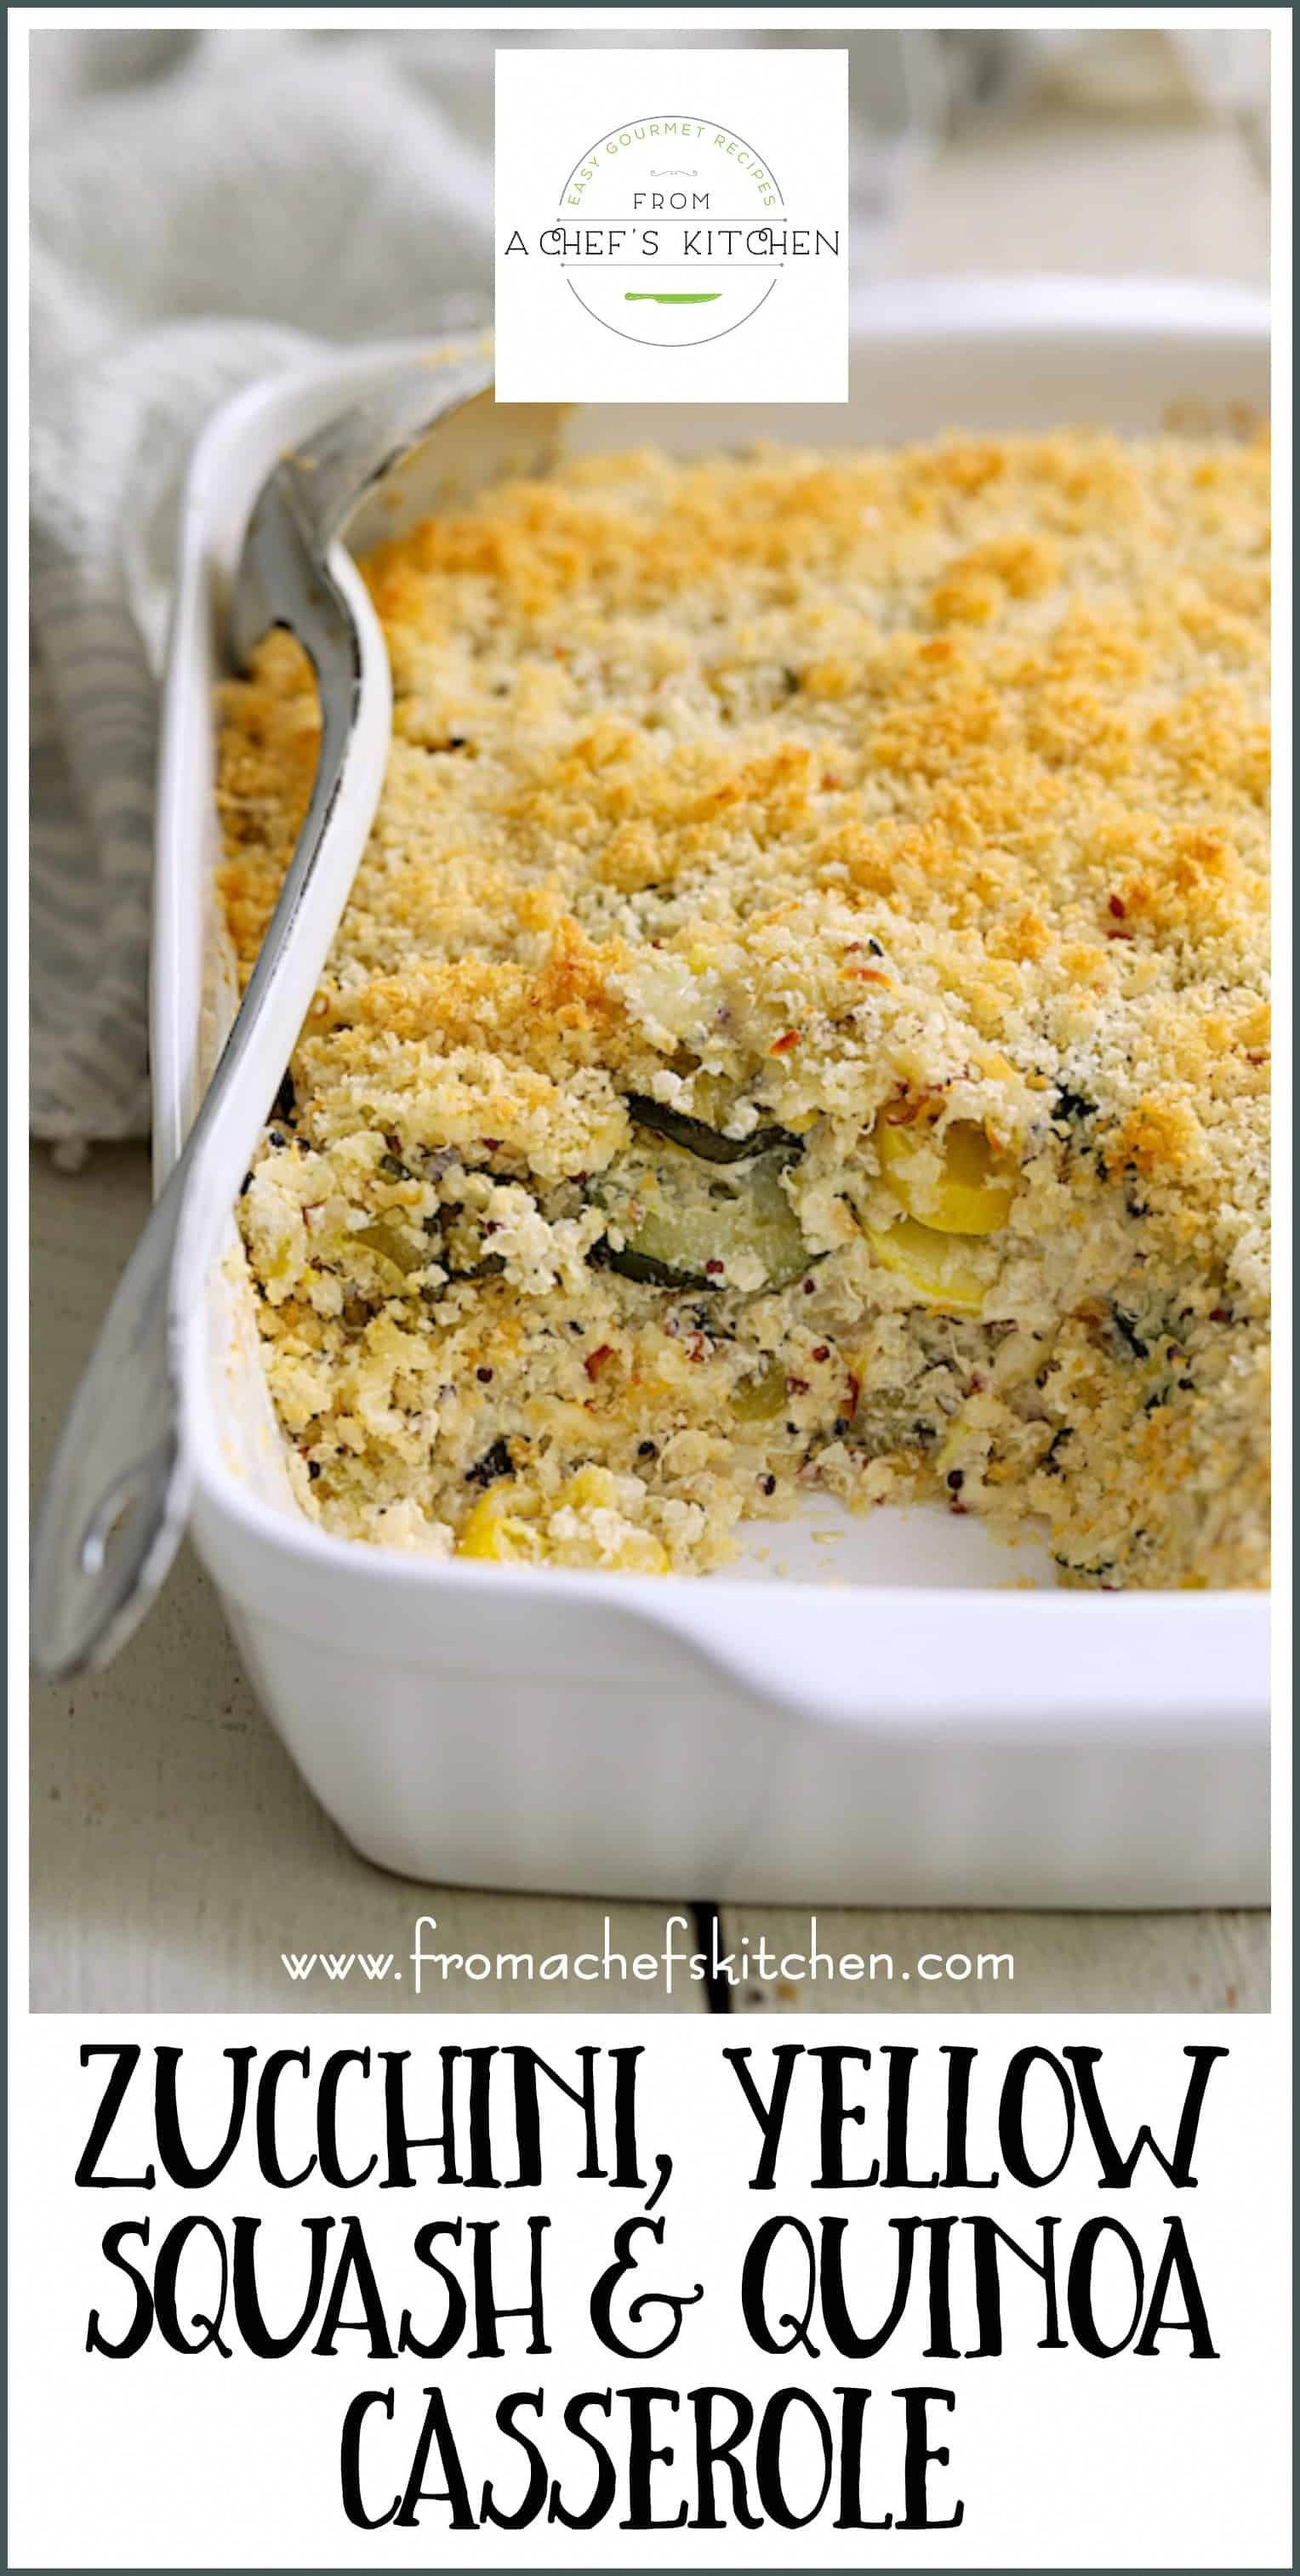 Zucchini Yellow Squash and Quinoa Casserole is a delicious way to use a summer bounty of zucchini and yellow squash either as a side dish or hearty meatless meal  Wi...